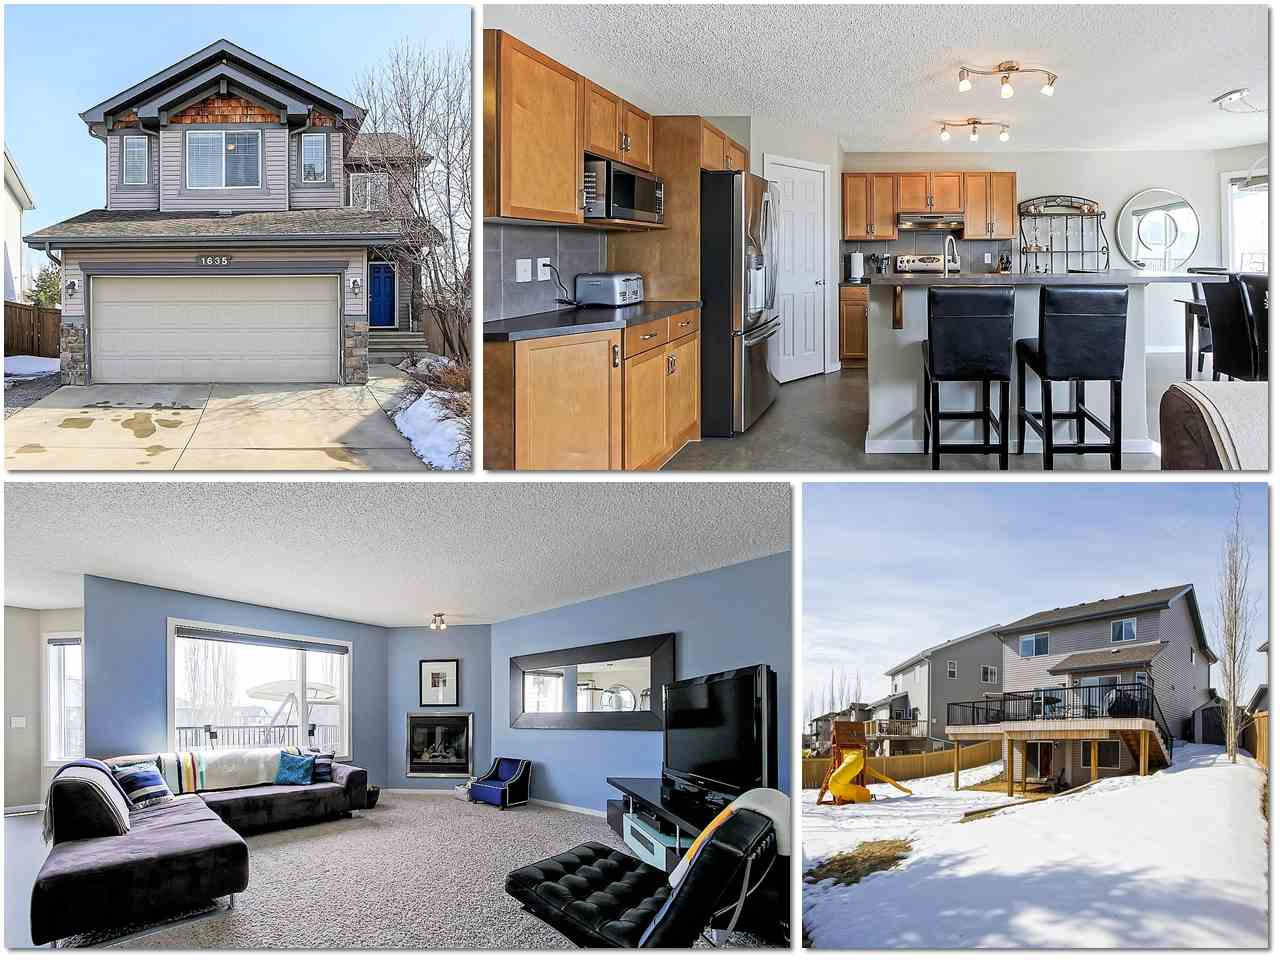 Main Photo: 1635 HODGSON Court NW in Edmonton: Zone 14 House for sale : MLS®# E4105182